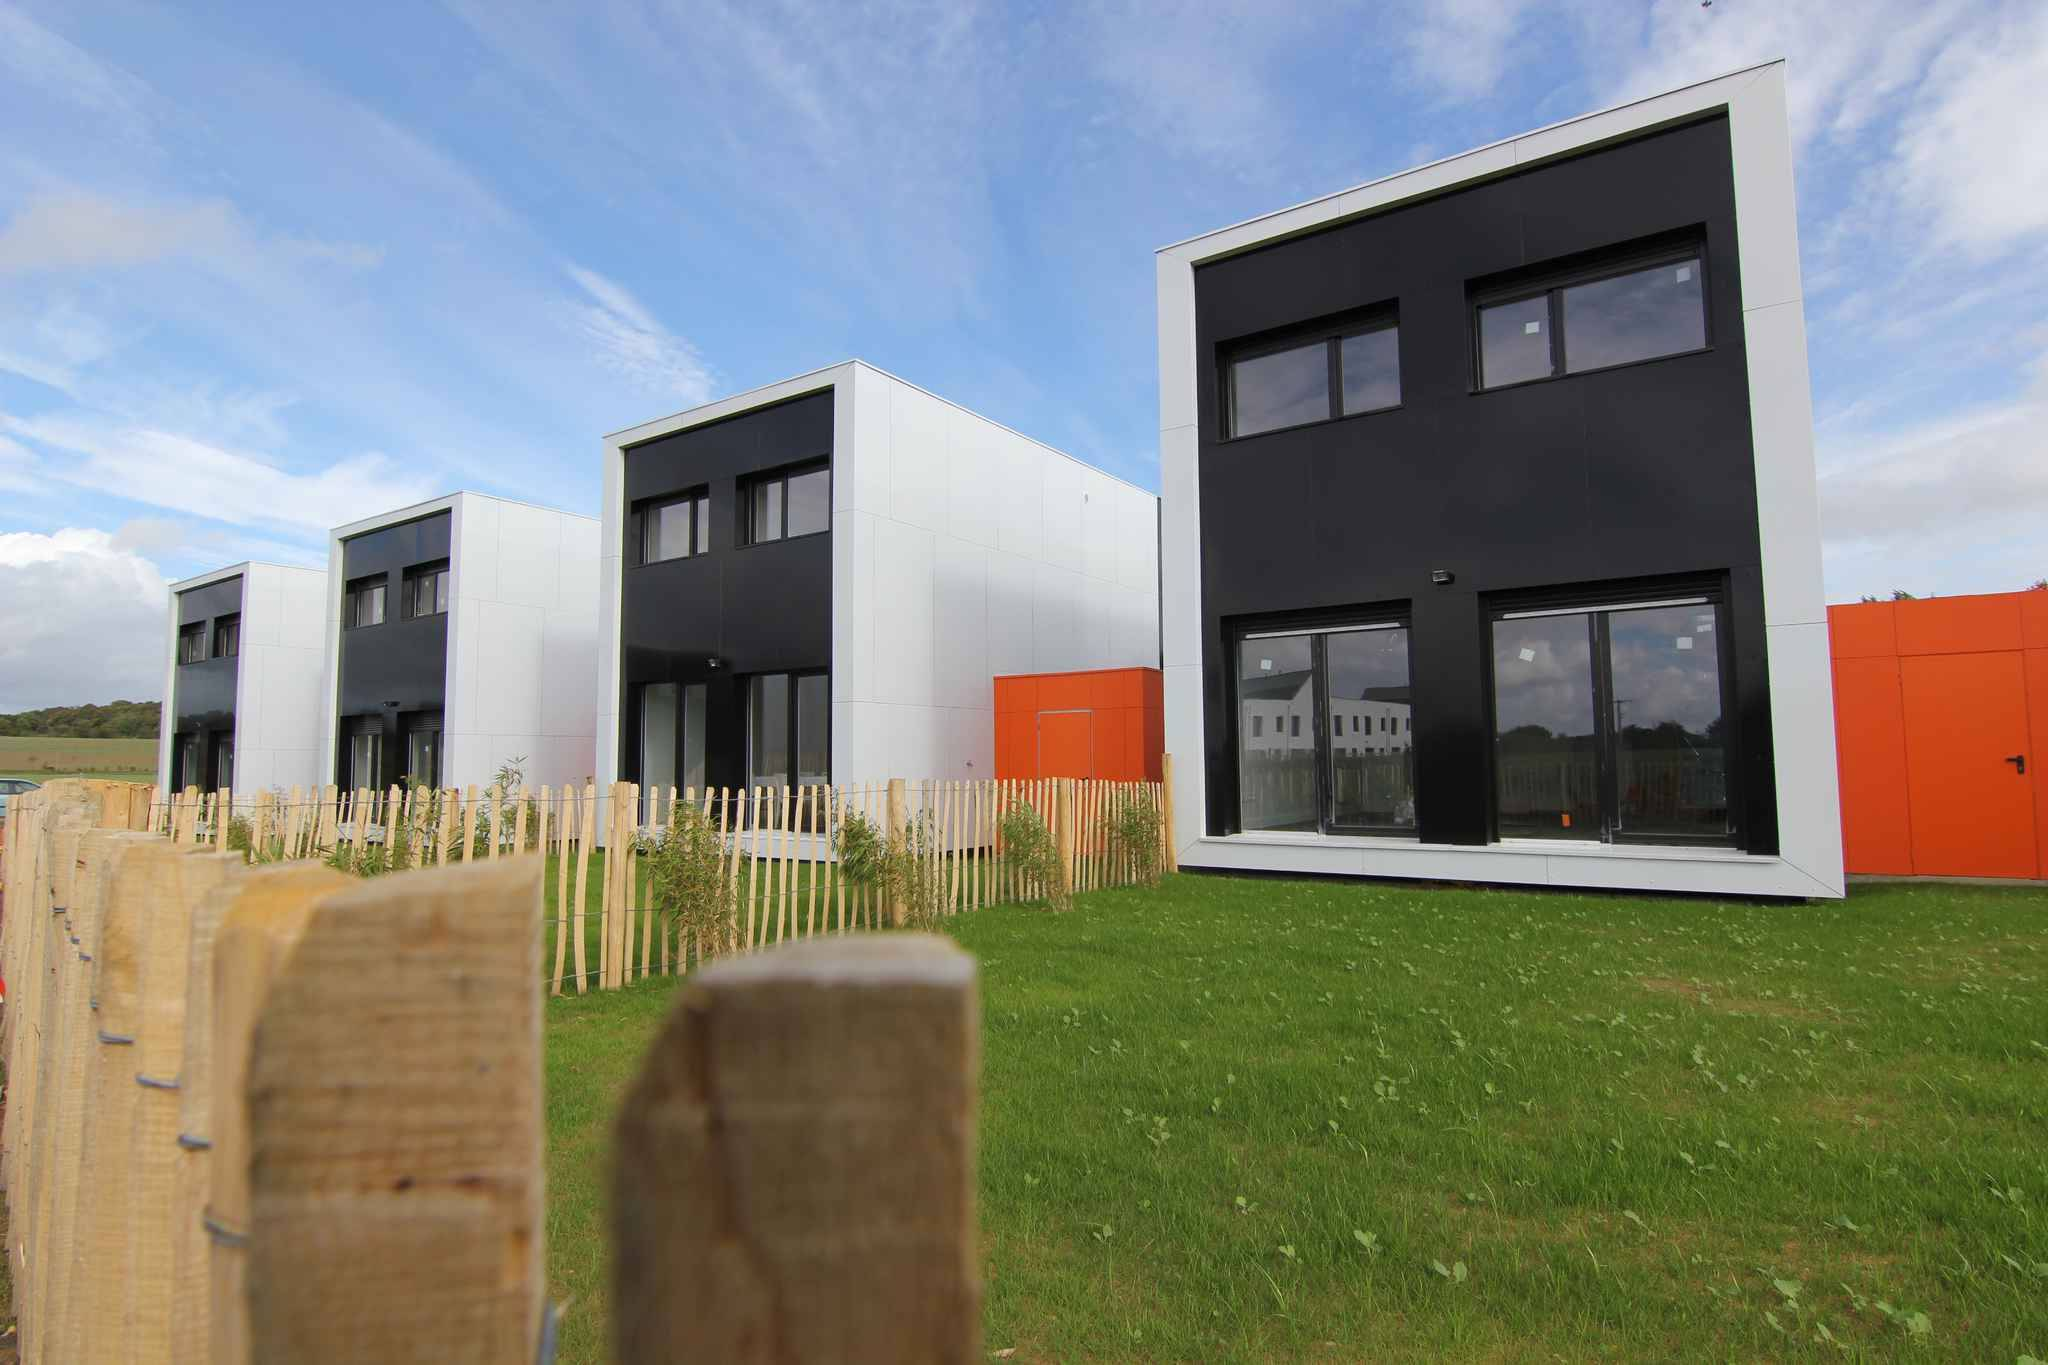 Rennes la maison container b3 ecodesign y croit dur for Maisons containers